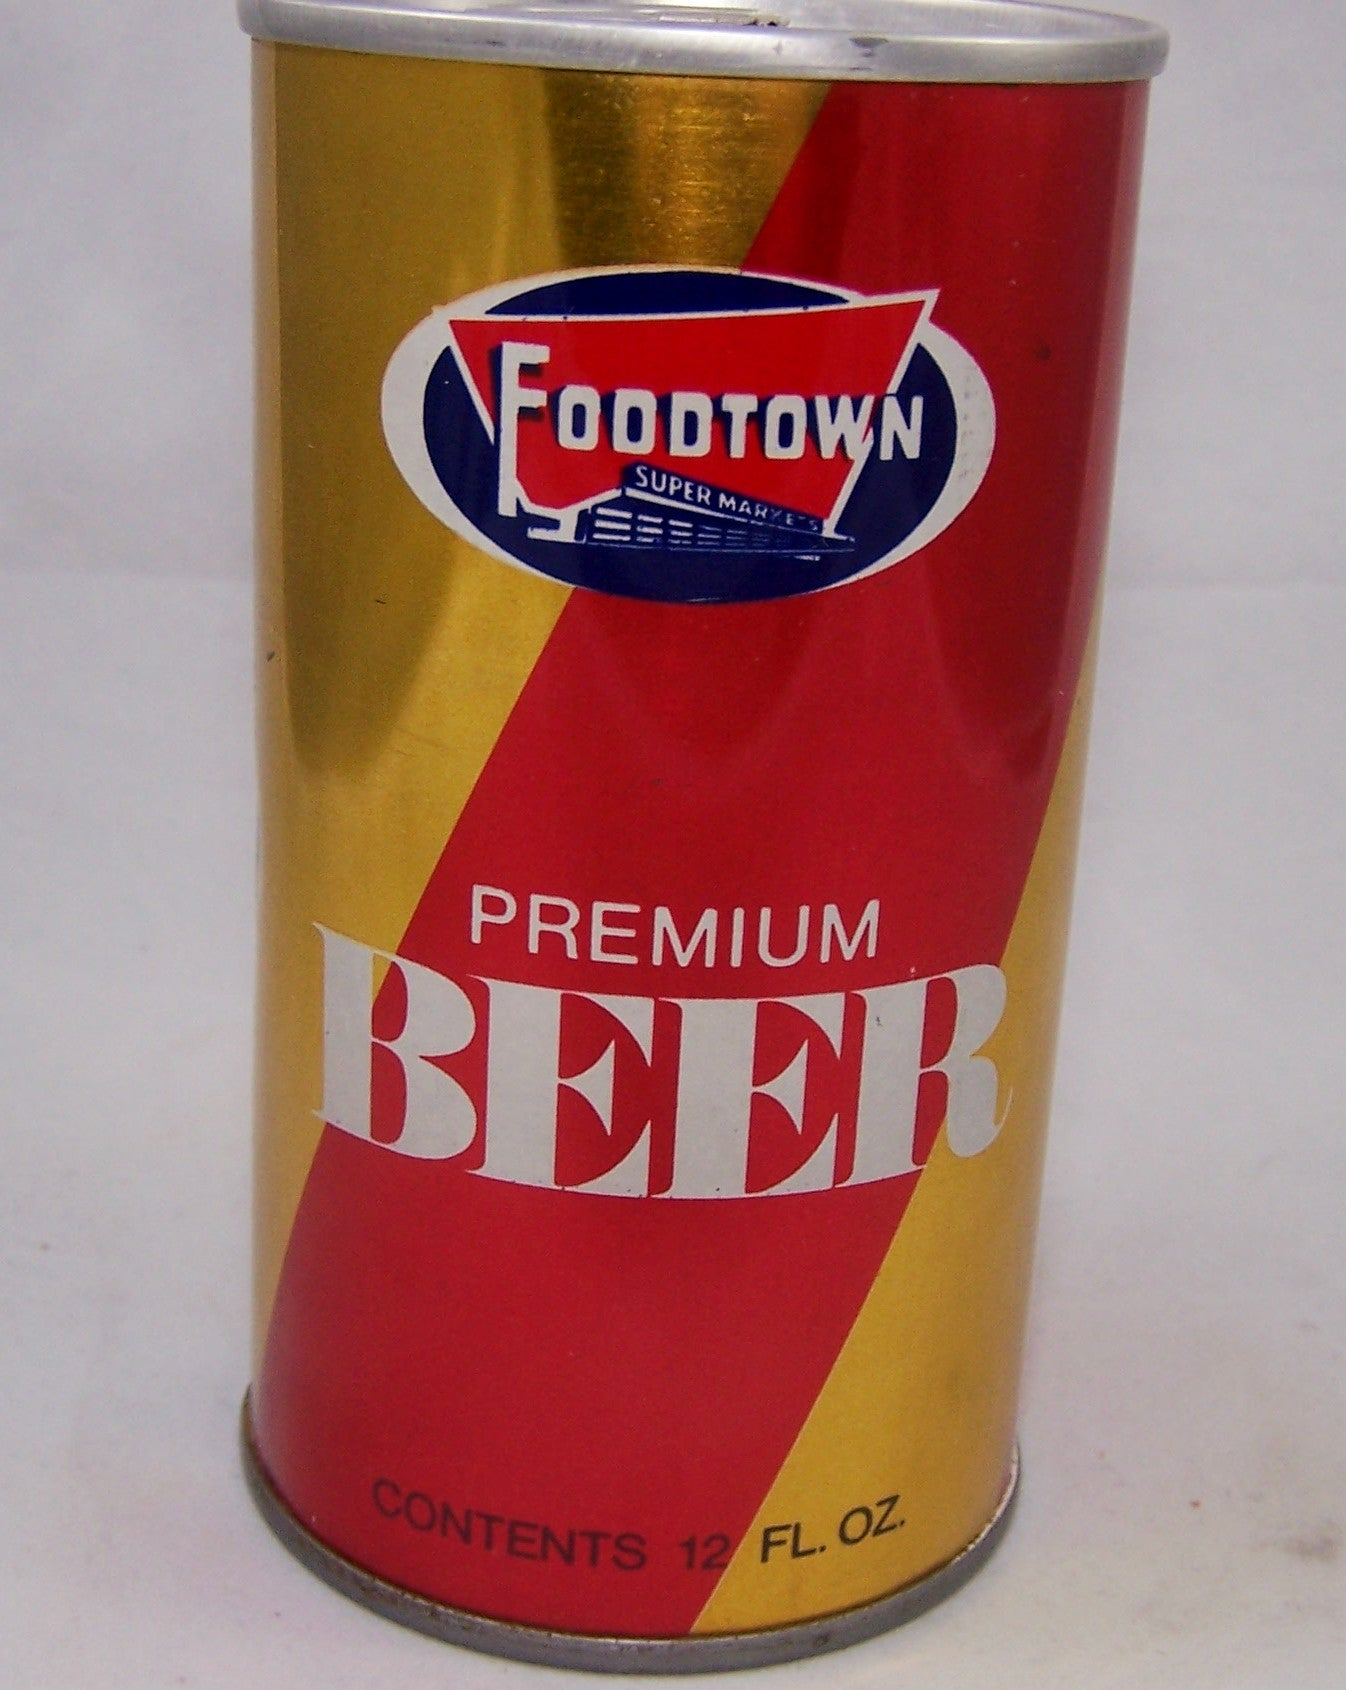 Foodtown Premium Beer, USBC II 65-30, Grade 1/1 + Sold on 10/07/16